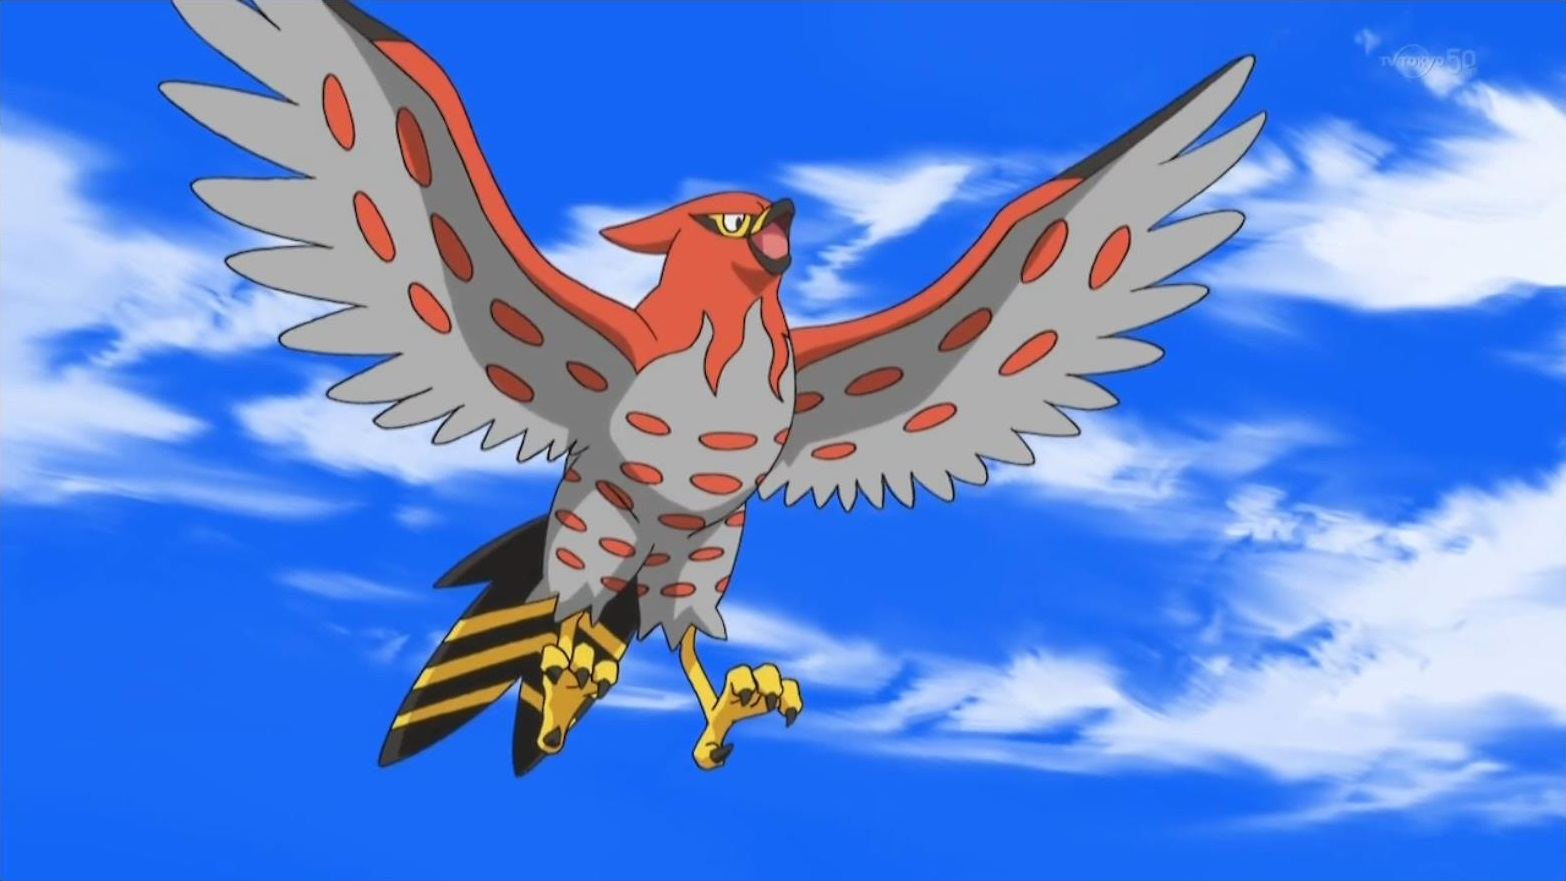 Moria used her Talonflame in a battle against a Sky Trainer's Skarmory. Ash then challenged her for a battle against his Hawlucha. Talonflame was able to defeat Ash's Hawlucha but was later defeated by Ash's newly evolved Fletchinder.